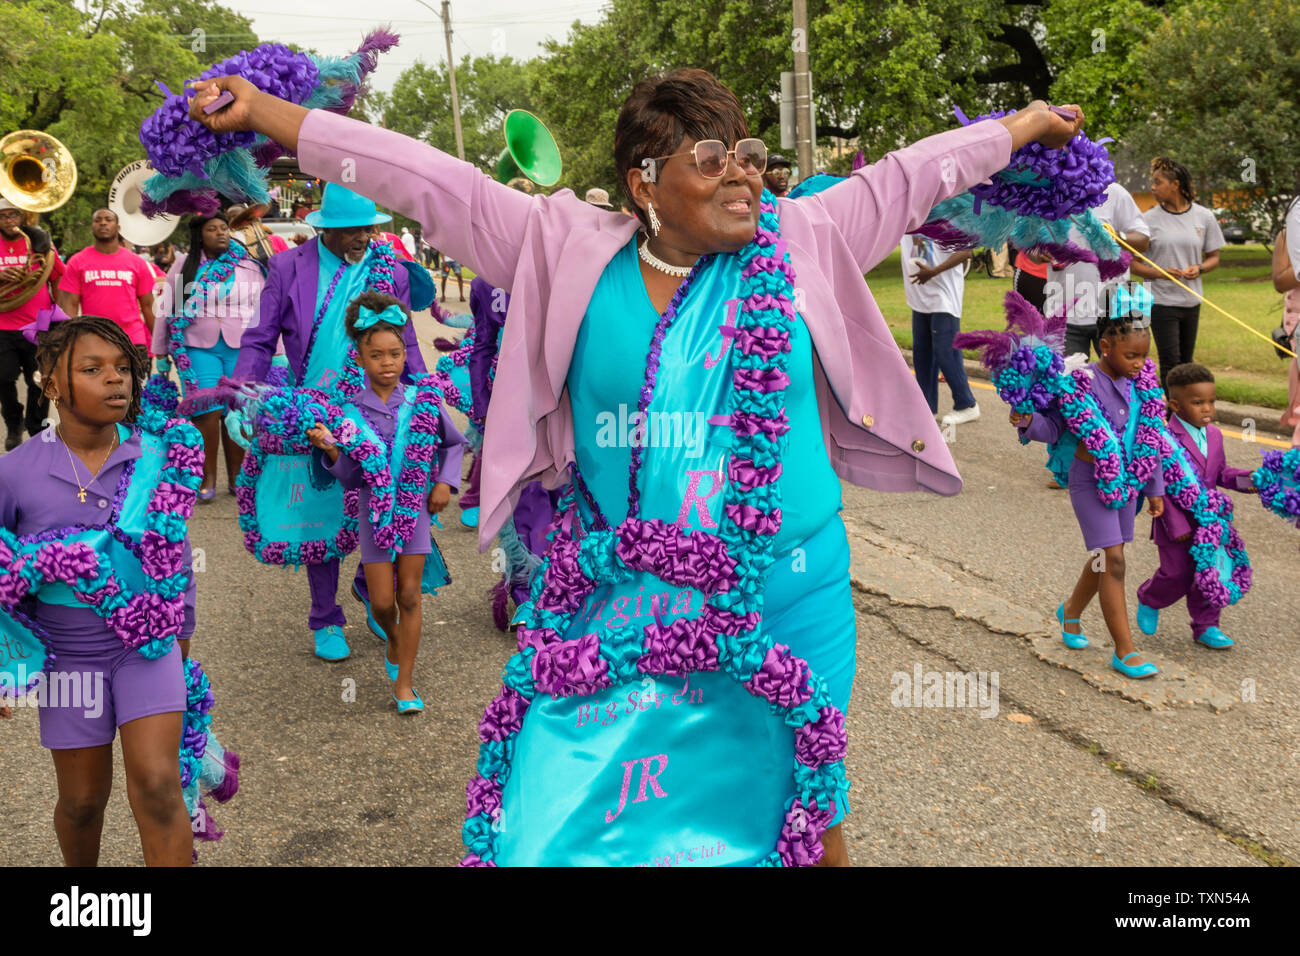 New Orleans, Louisiana - Das Original Big Seven/Muttertag zweite Zeile Parade. Stockbild